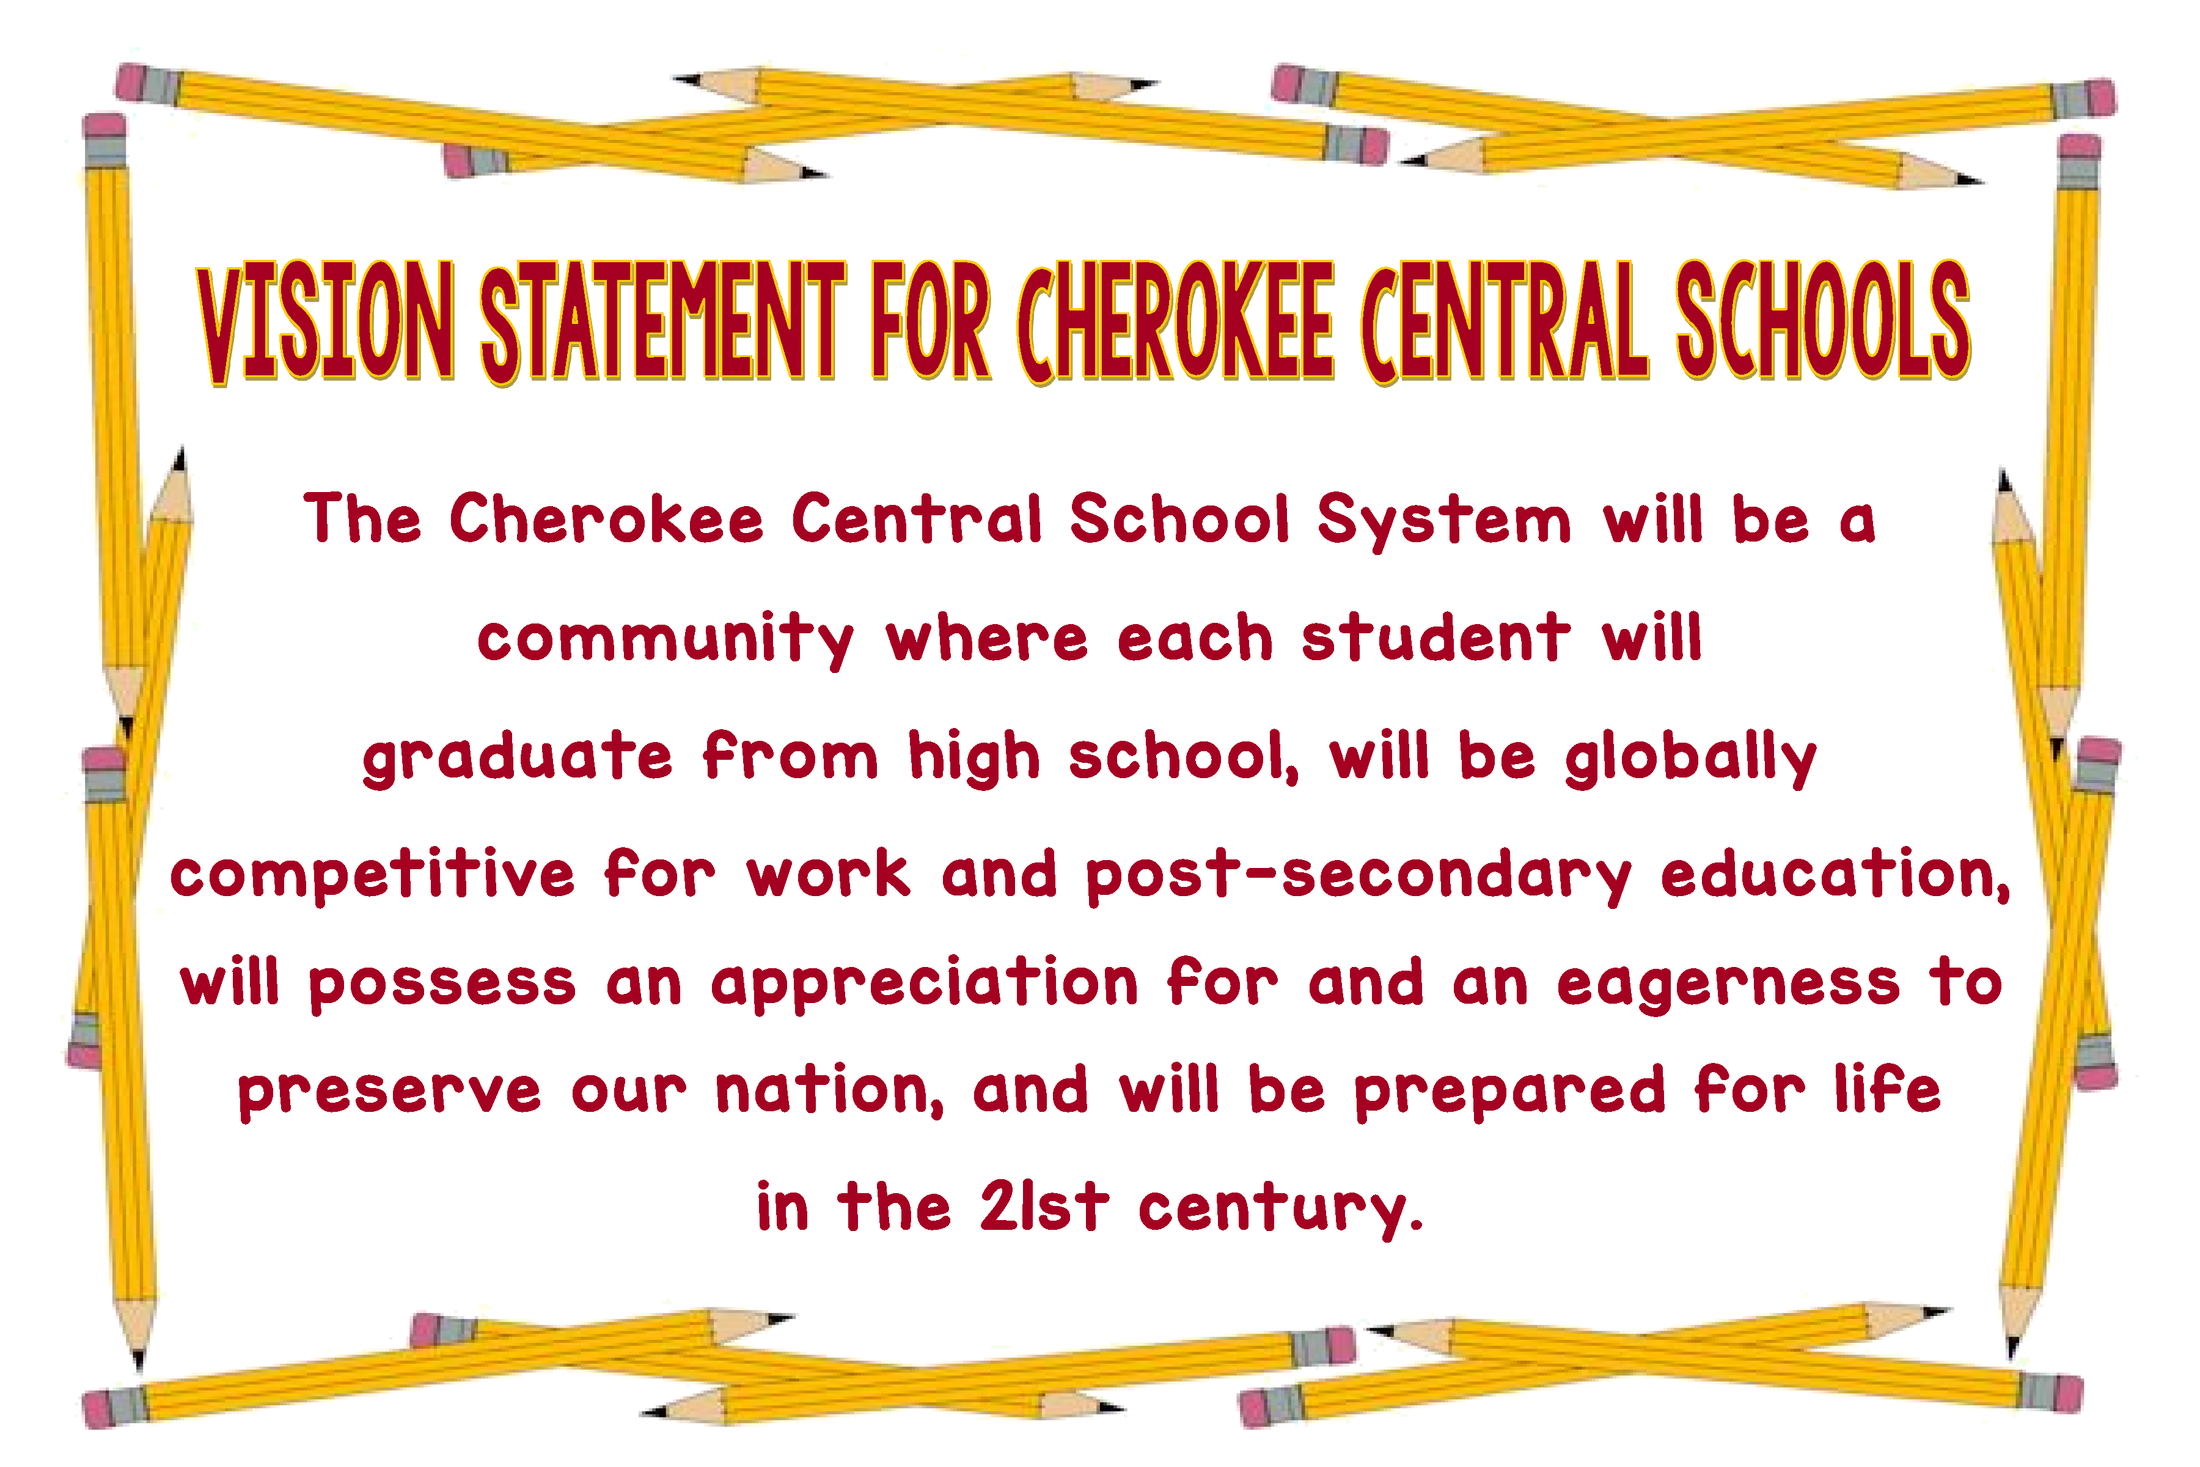 Vision Statement for Cherokee Central Schools